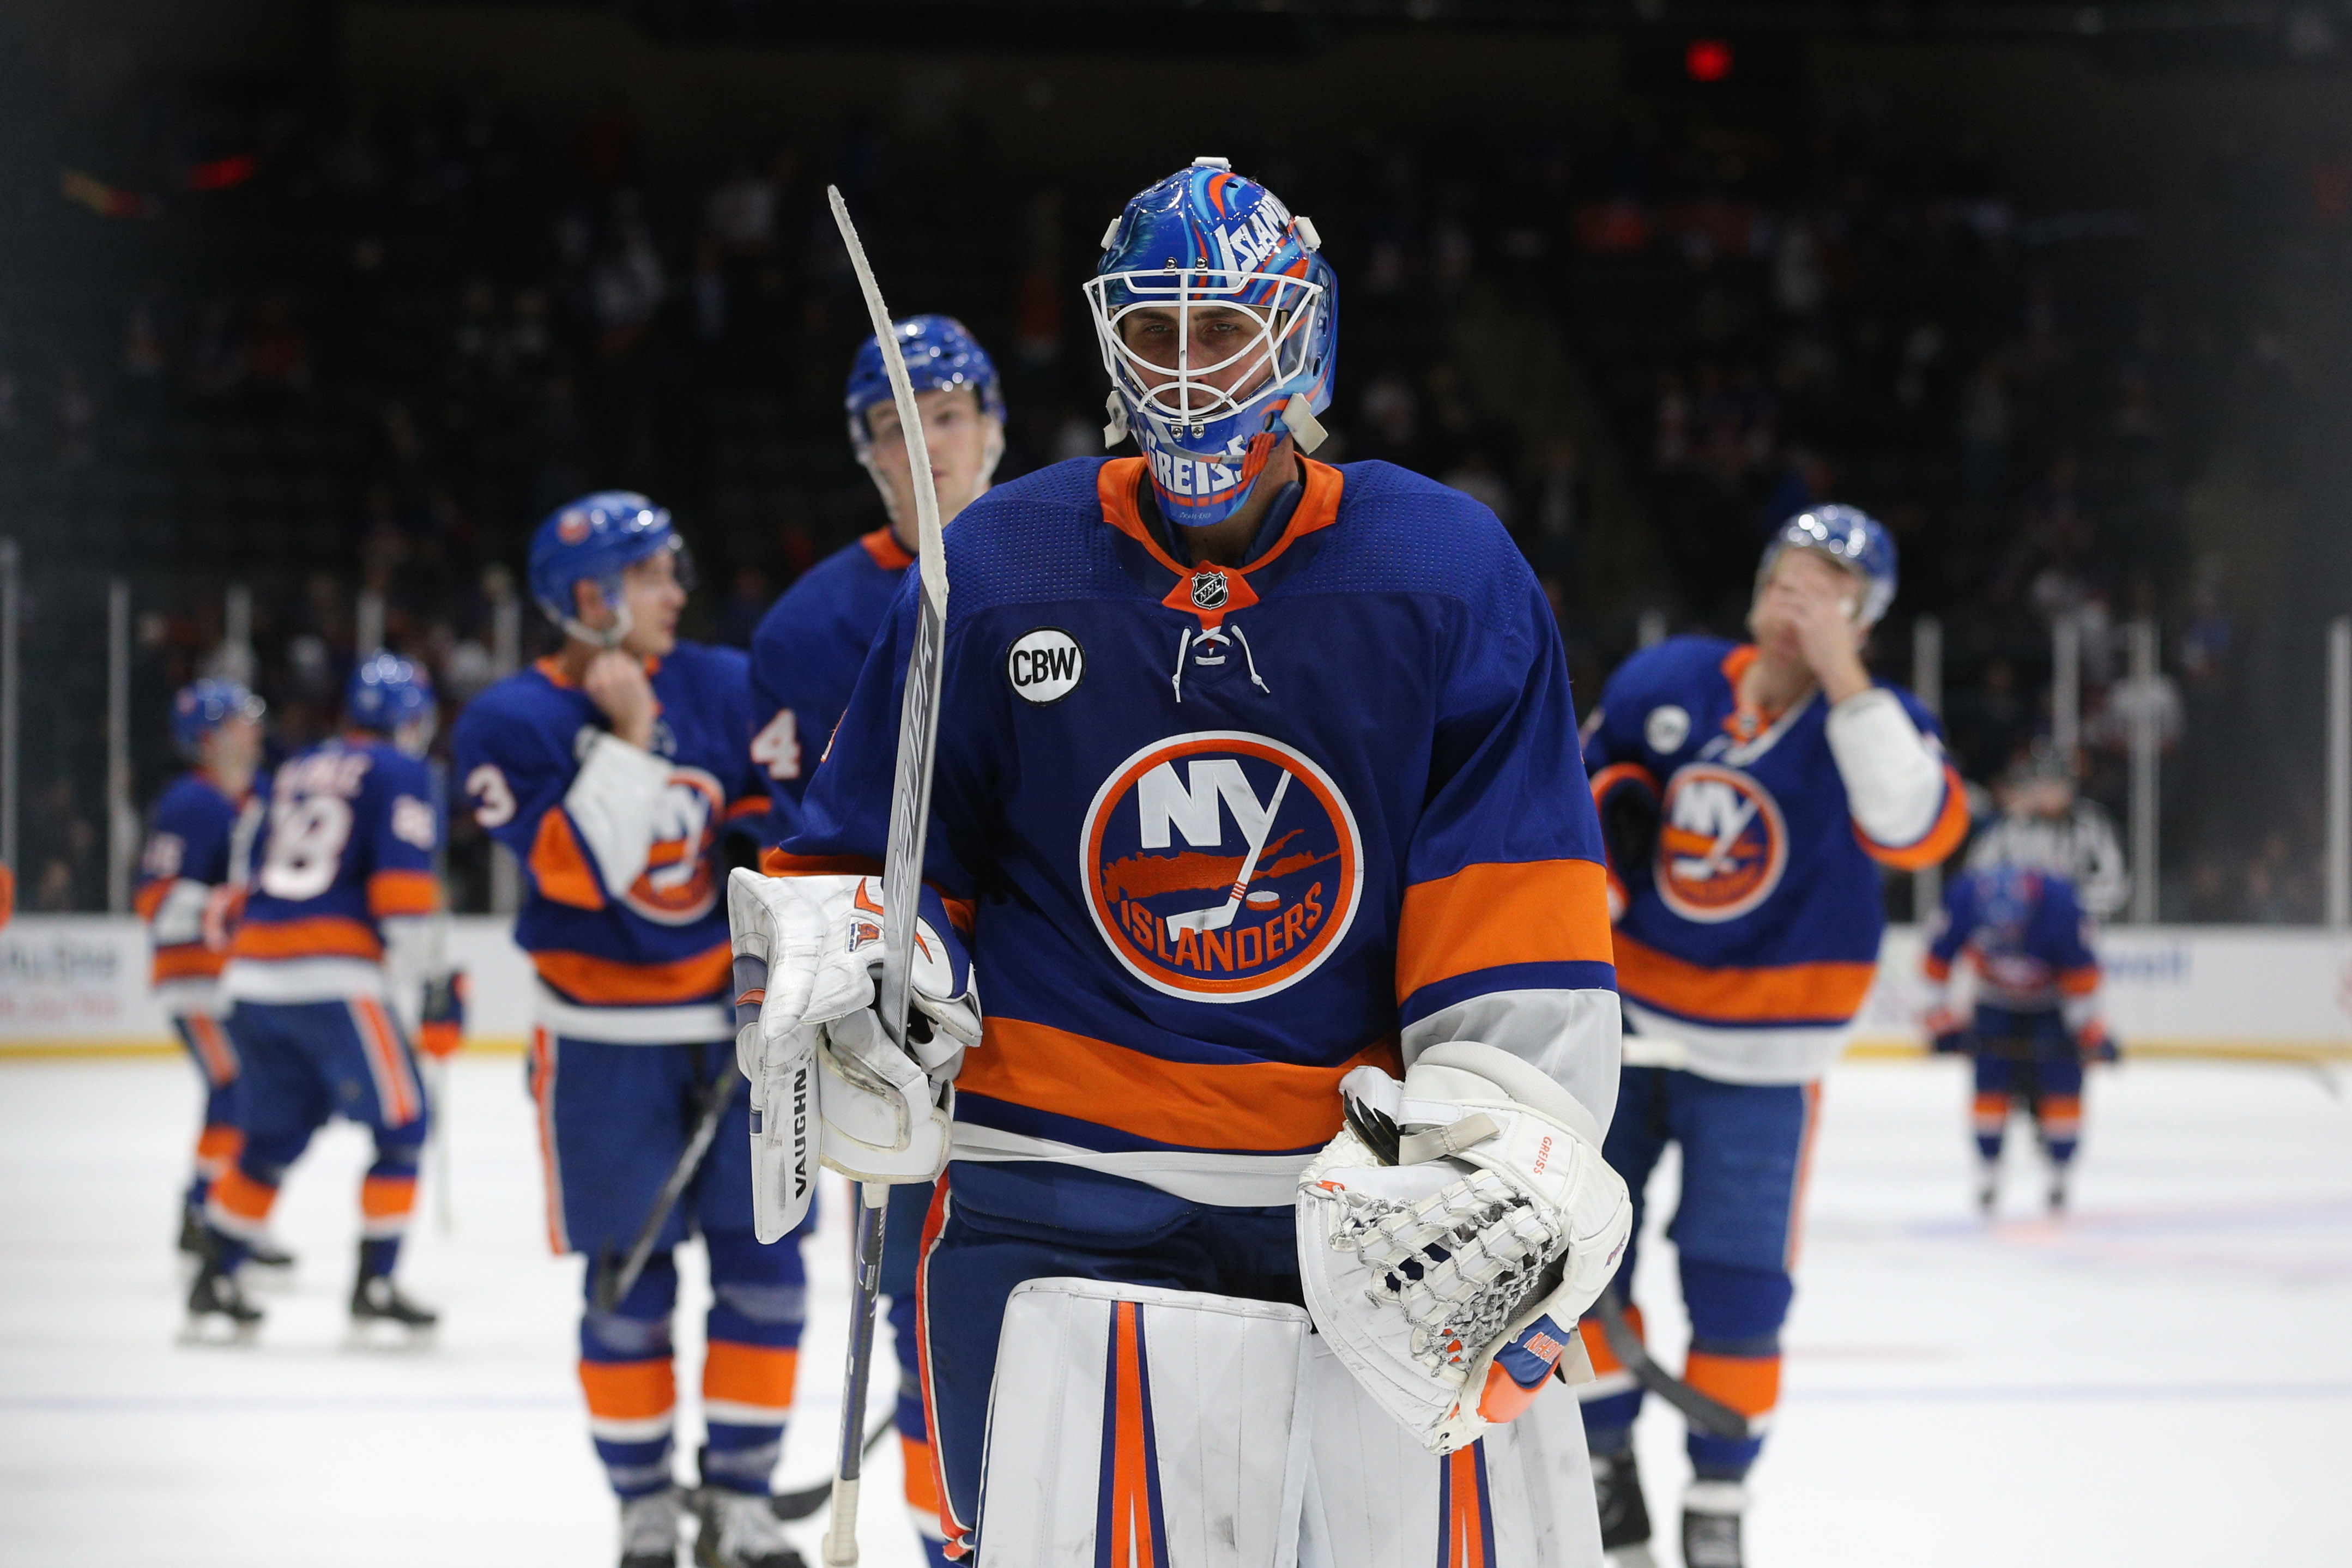 Jan 8, 2019; Uniondale, NY, USA; New York Islanders goalie Thomas Greiss (1) leaves the ice after losing to the Carolina Hurricanes at Nassau Veterans Memorial Coliseum. Mandatory Credit: Brad Penner-USA TODAY Sports